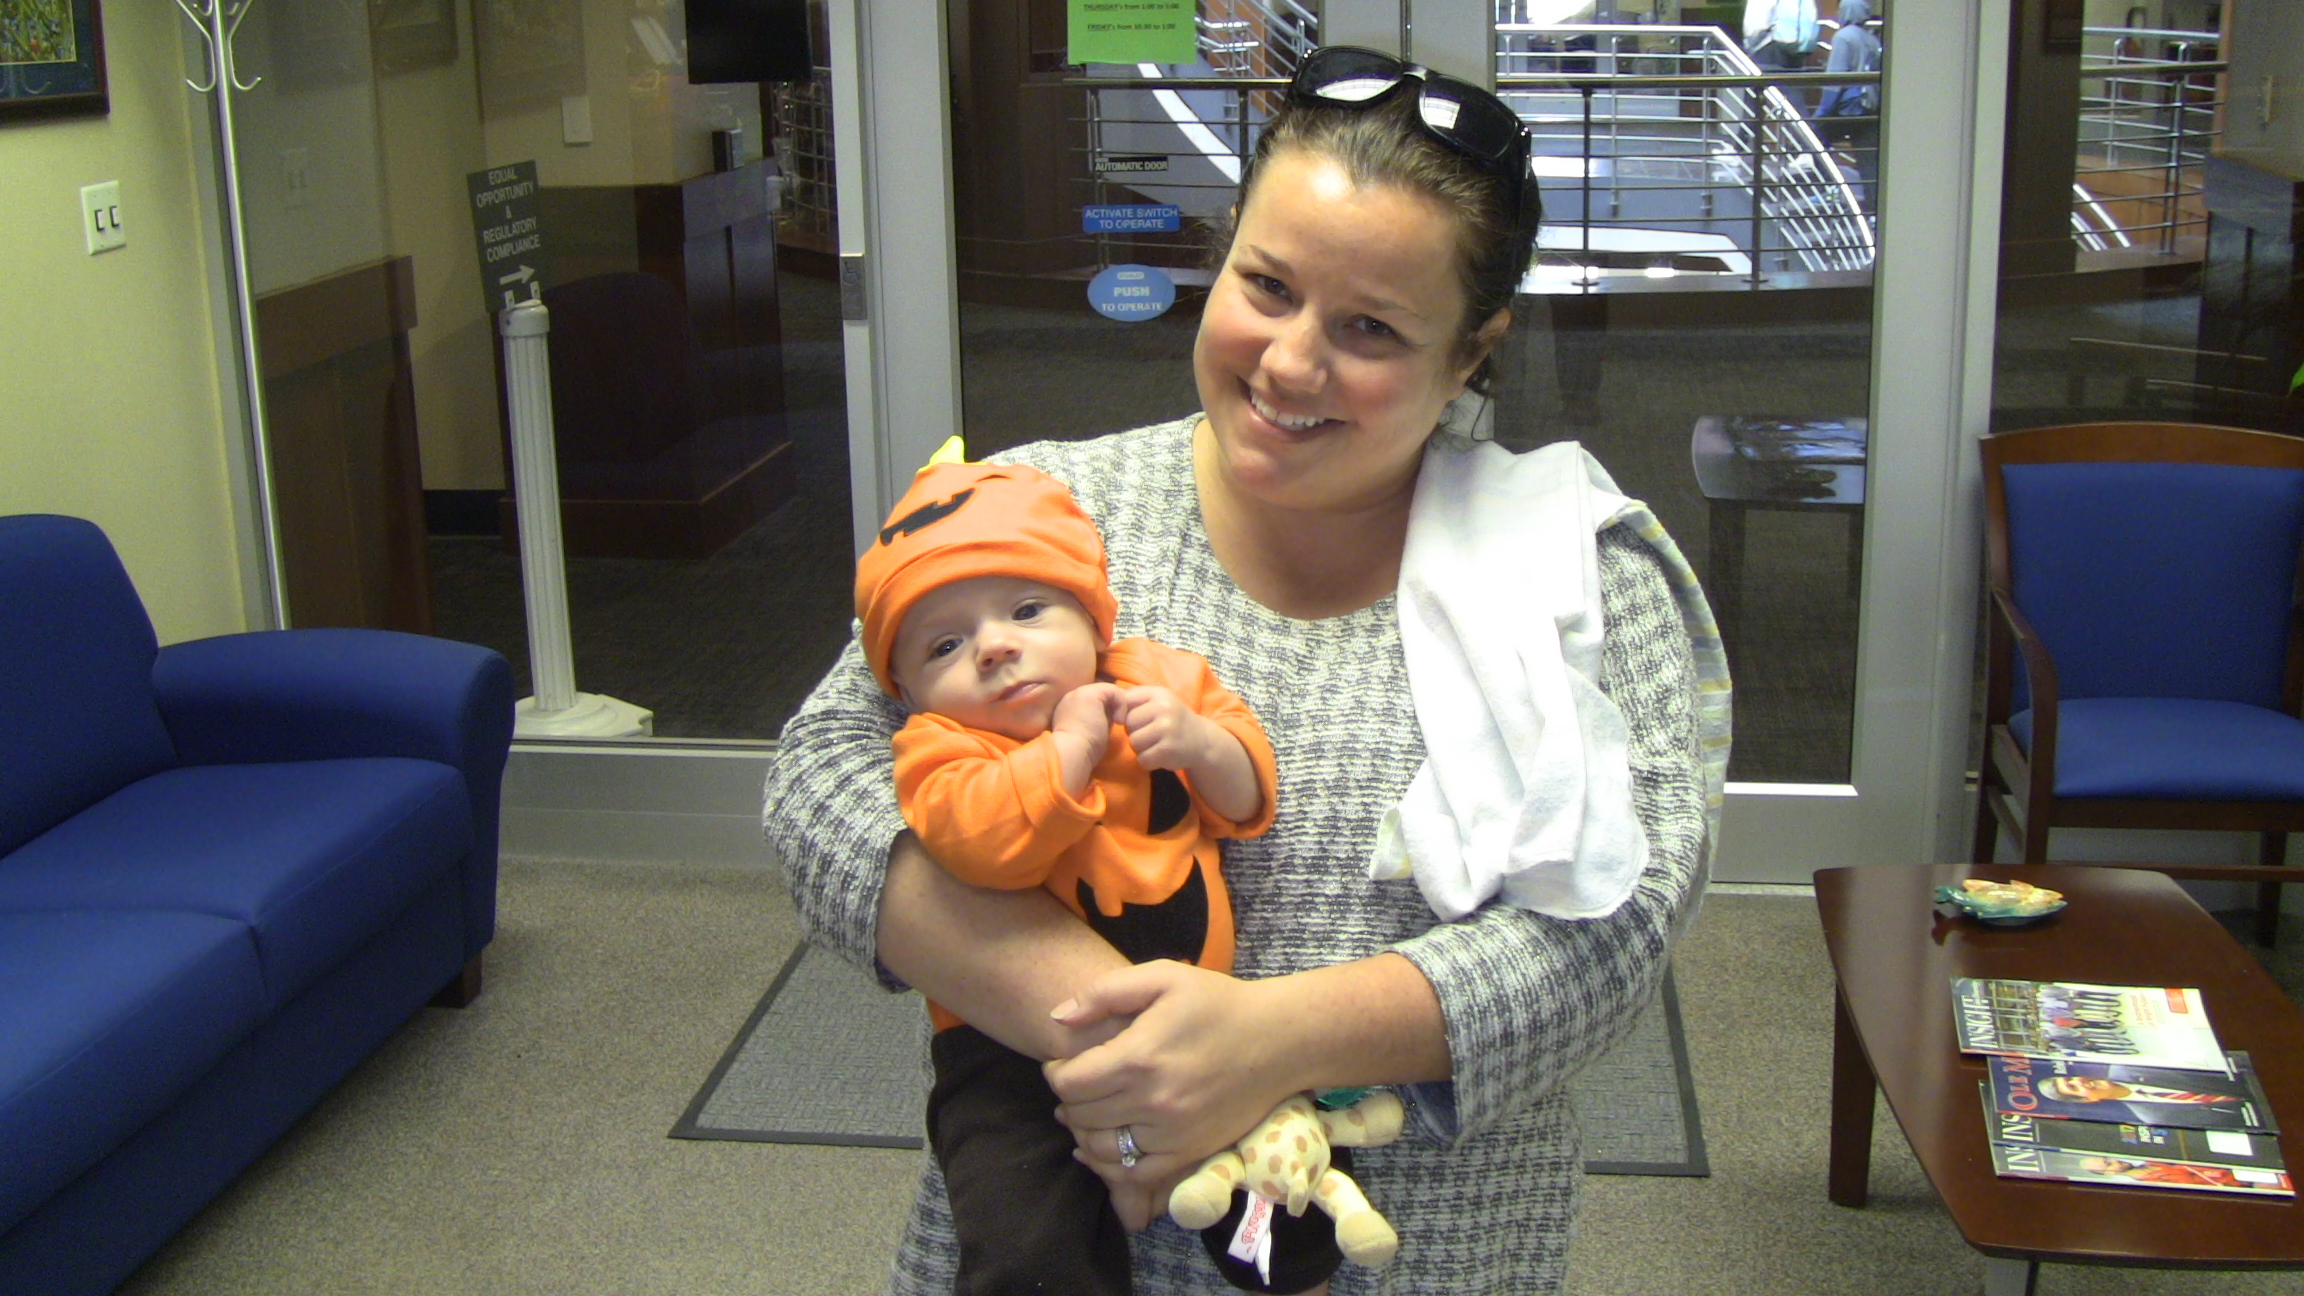 Cassie Luna and her baby son take a fun Halloween picture.